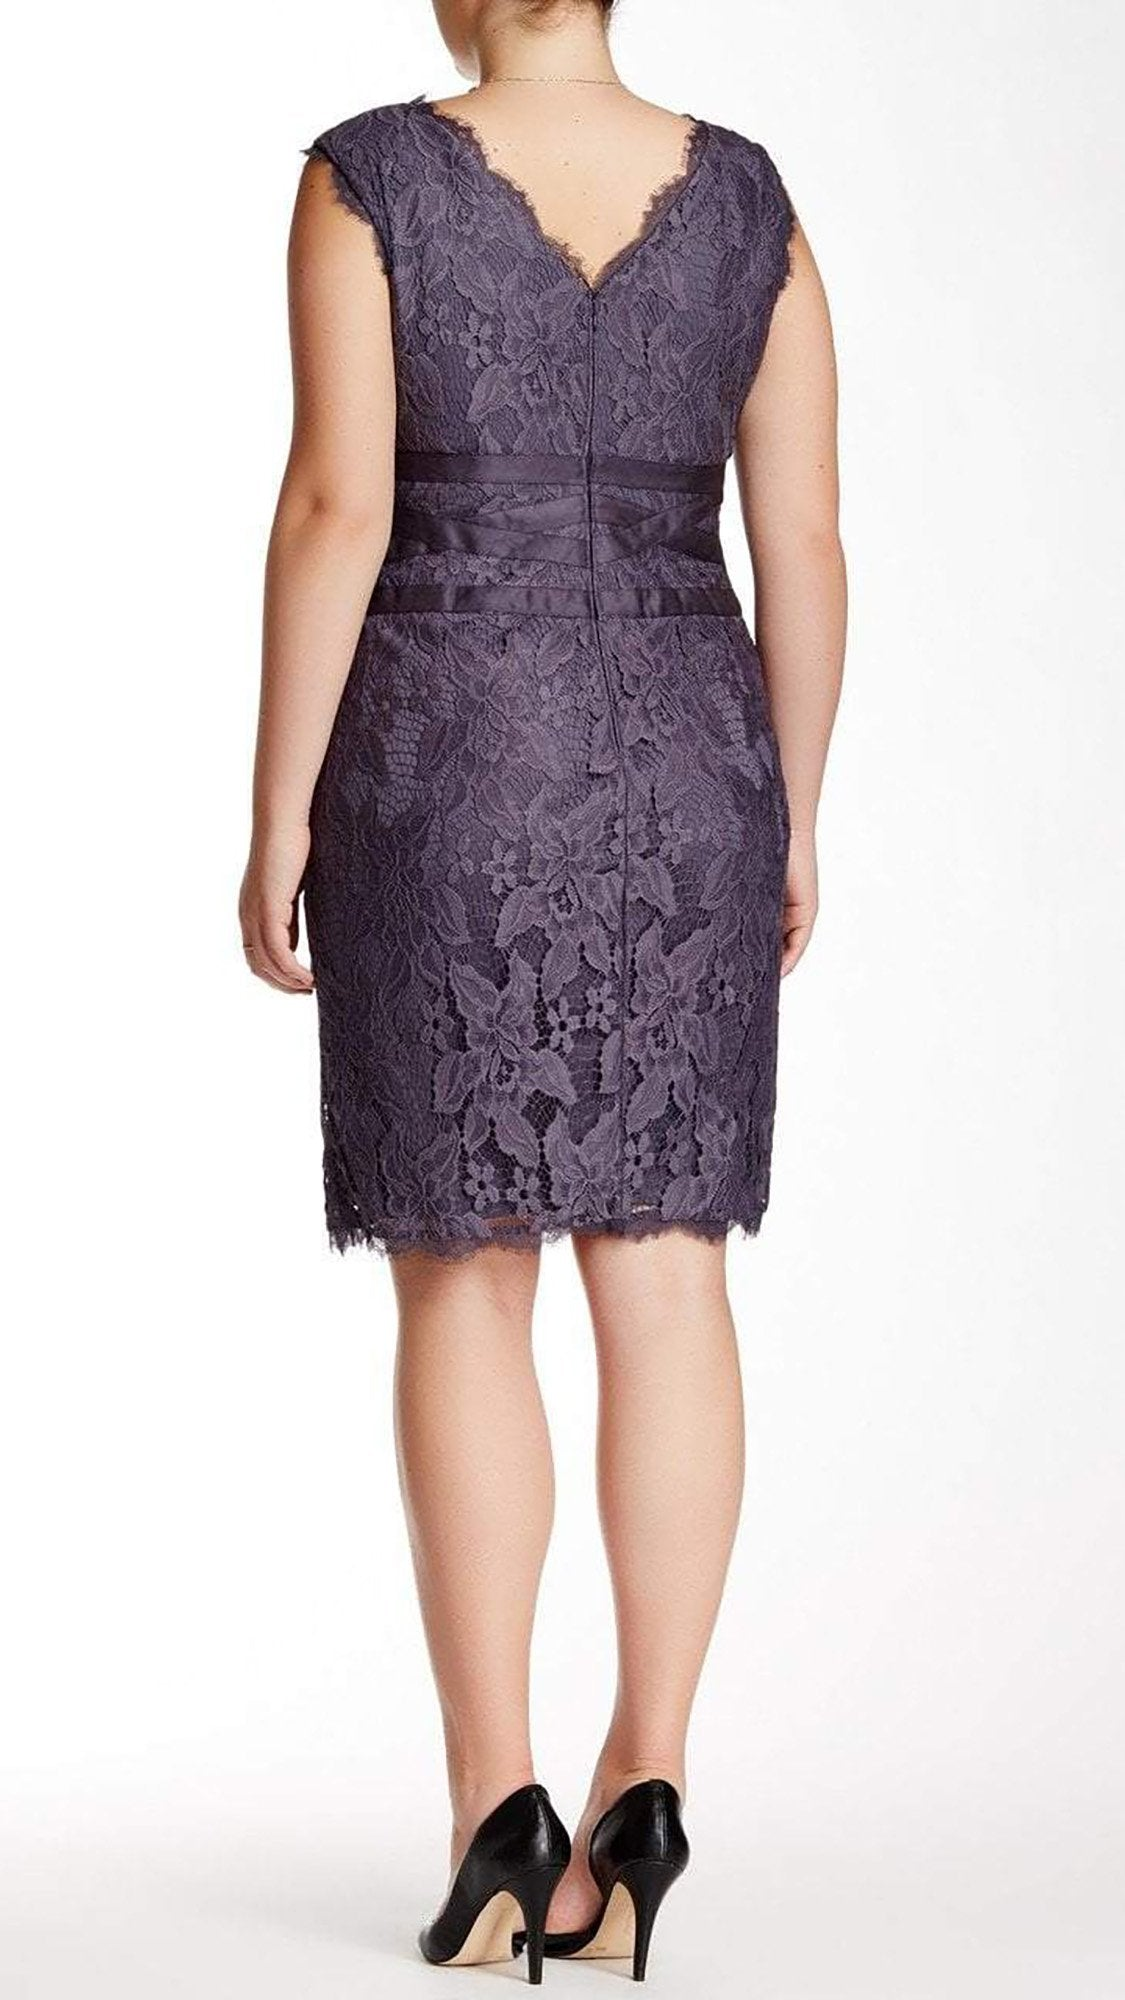 Adrianna Papell - 41905221 V-Neck Lace Ribbon Cocktail Dress in Doe